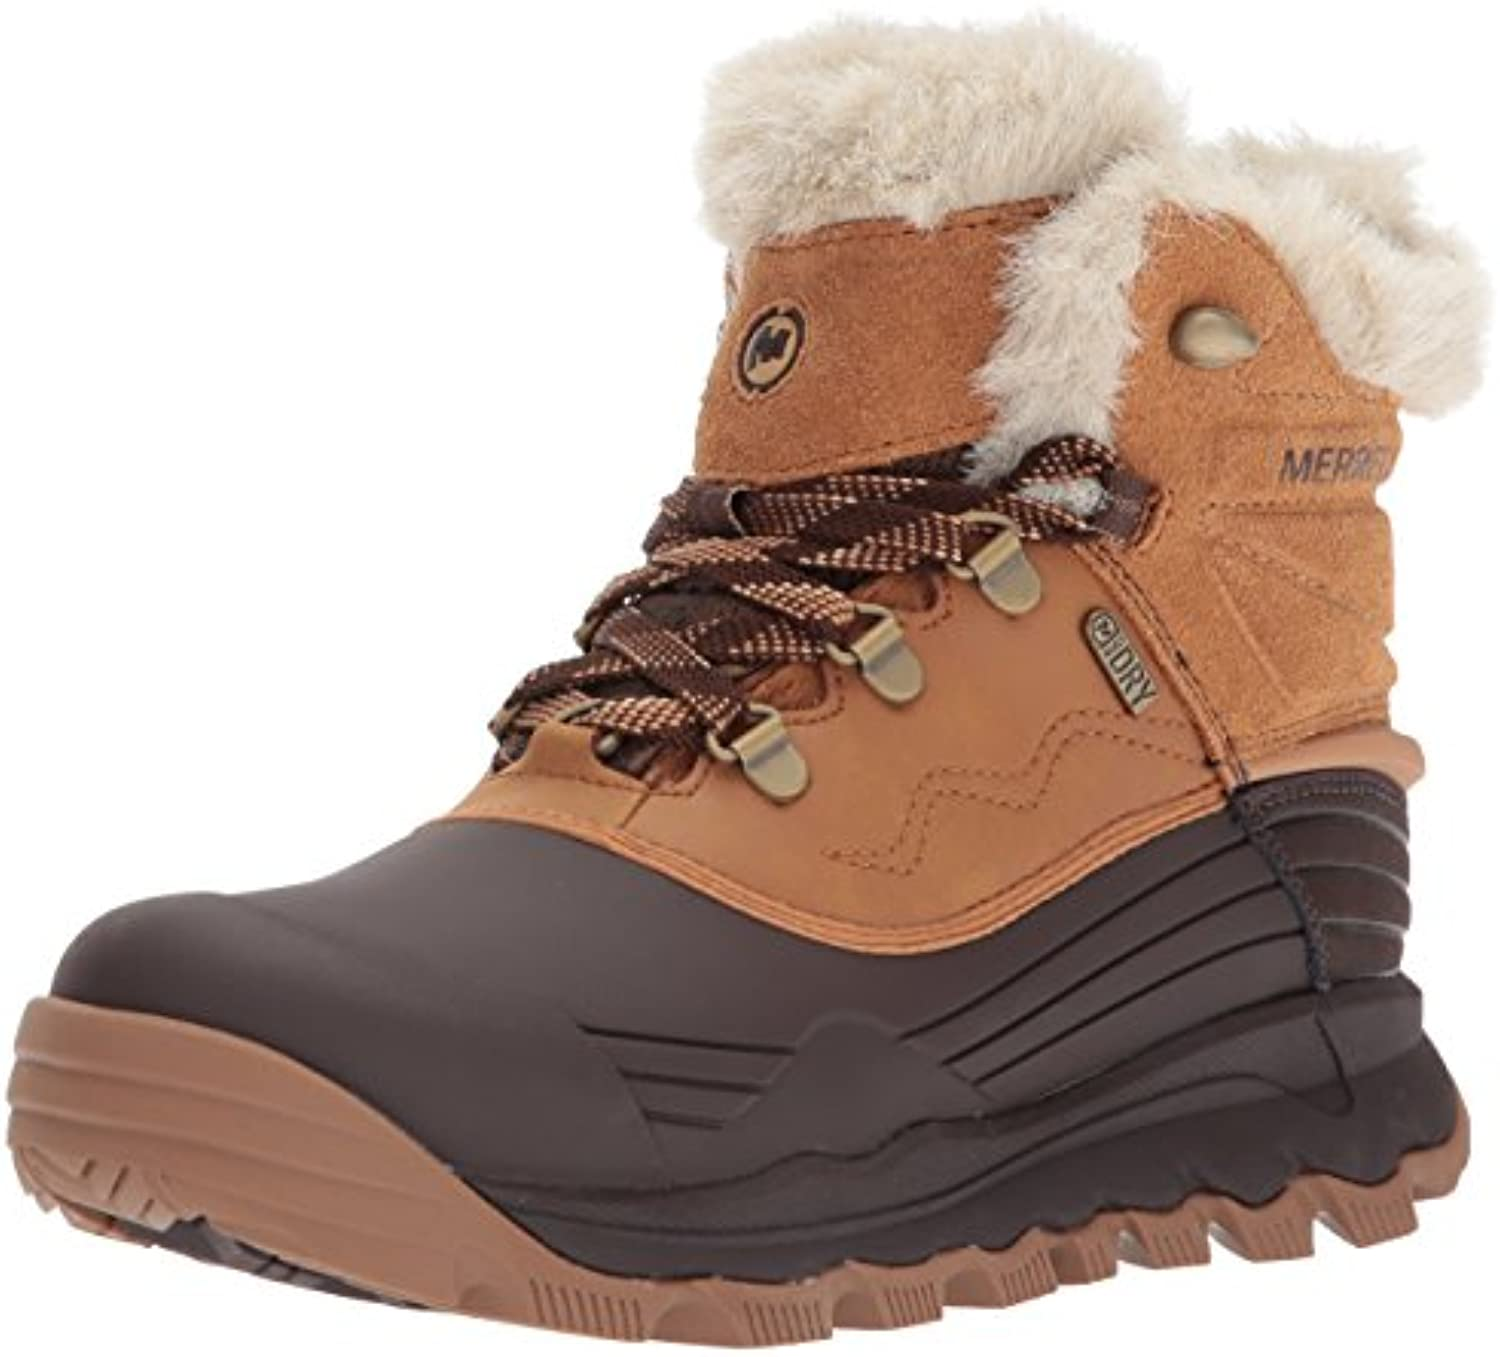 Merrell Thermo Vortex 6